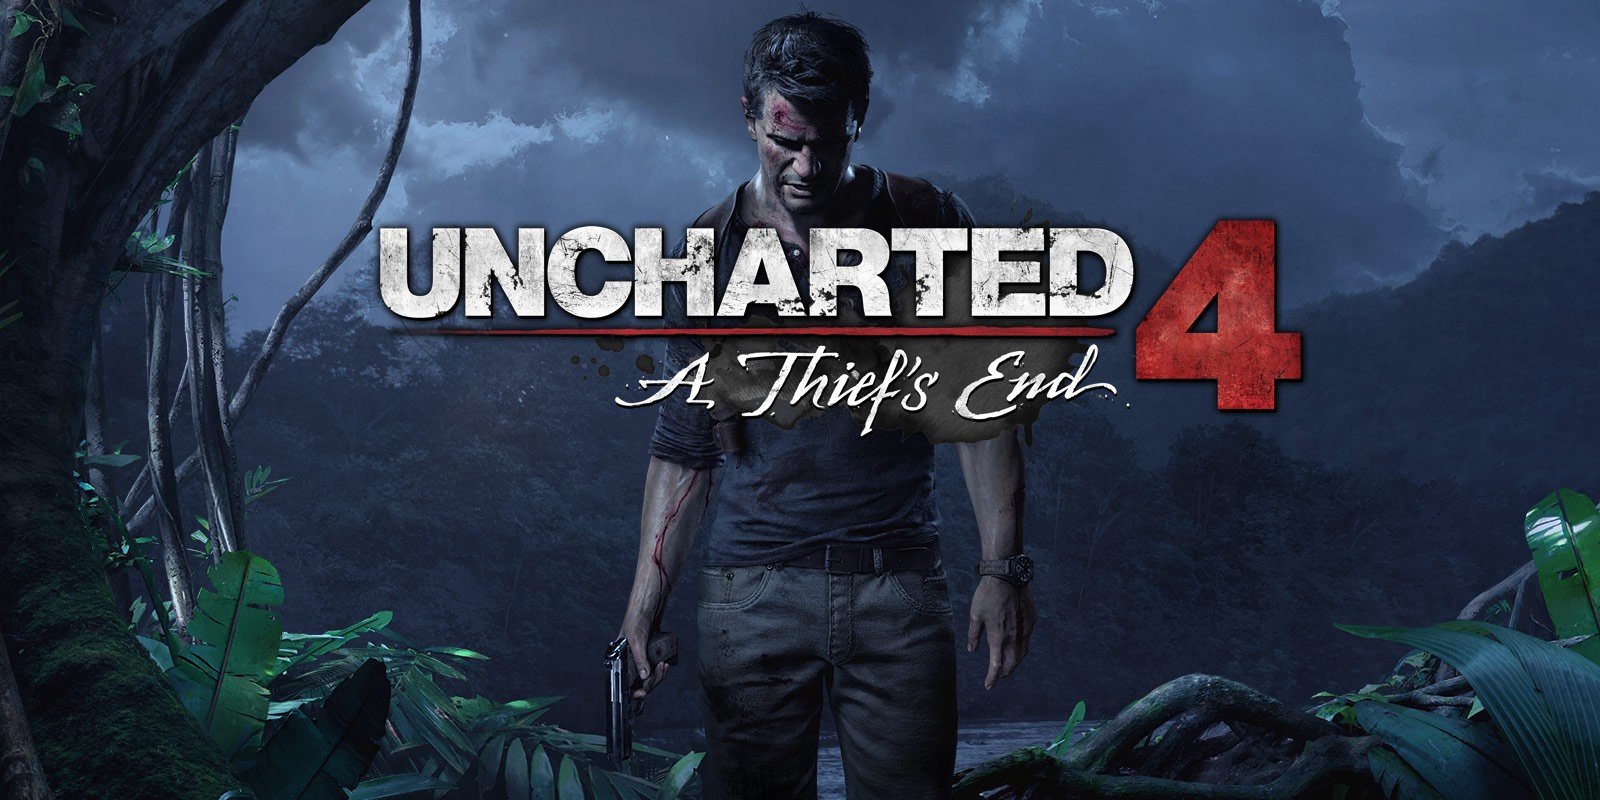 Why People Love the Uncharted Video Game Series